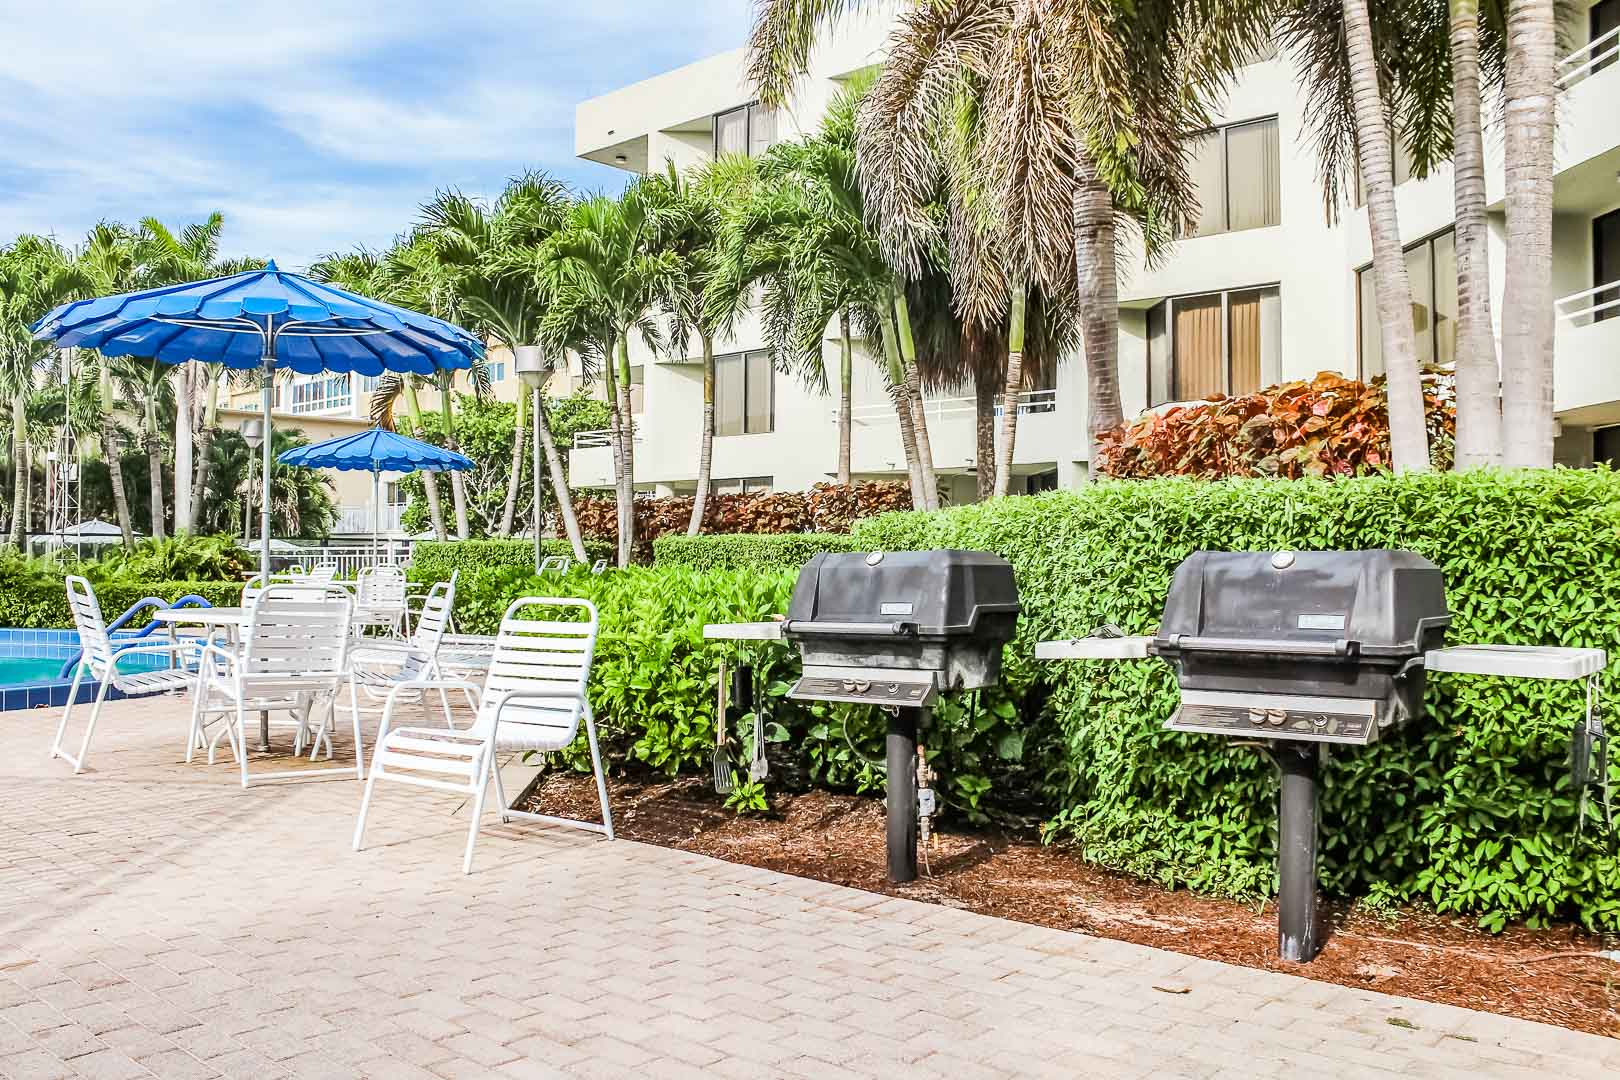 A pleasant pool area with BBQ Grills at VRI's Berkshire by the Sea in Florida.